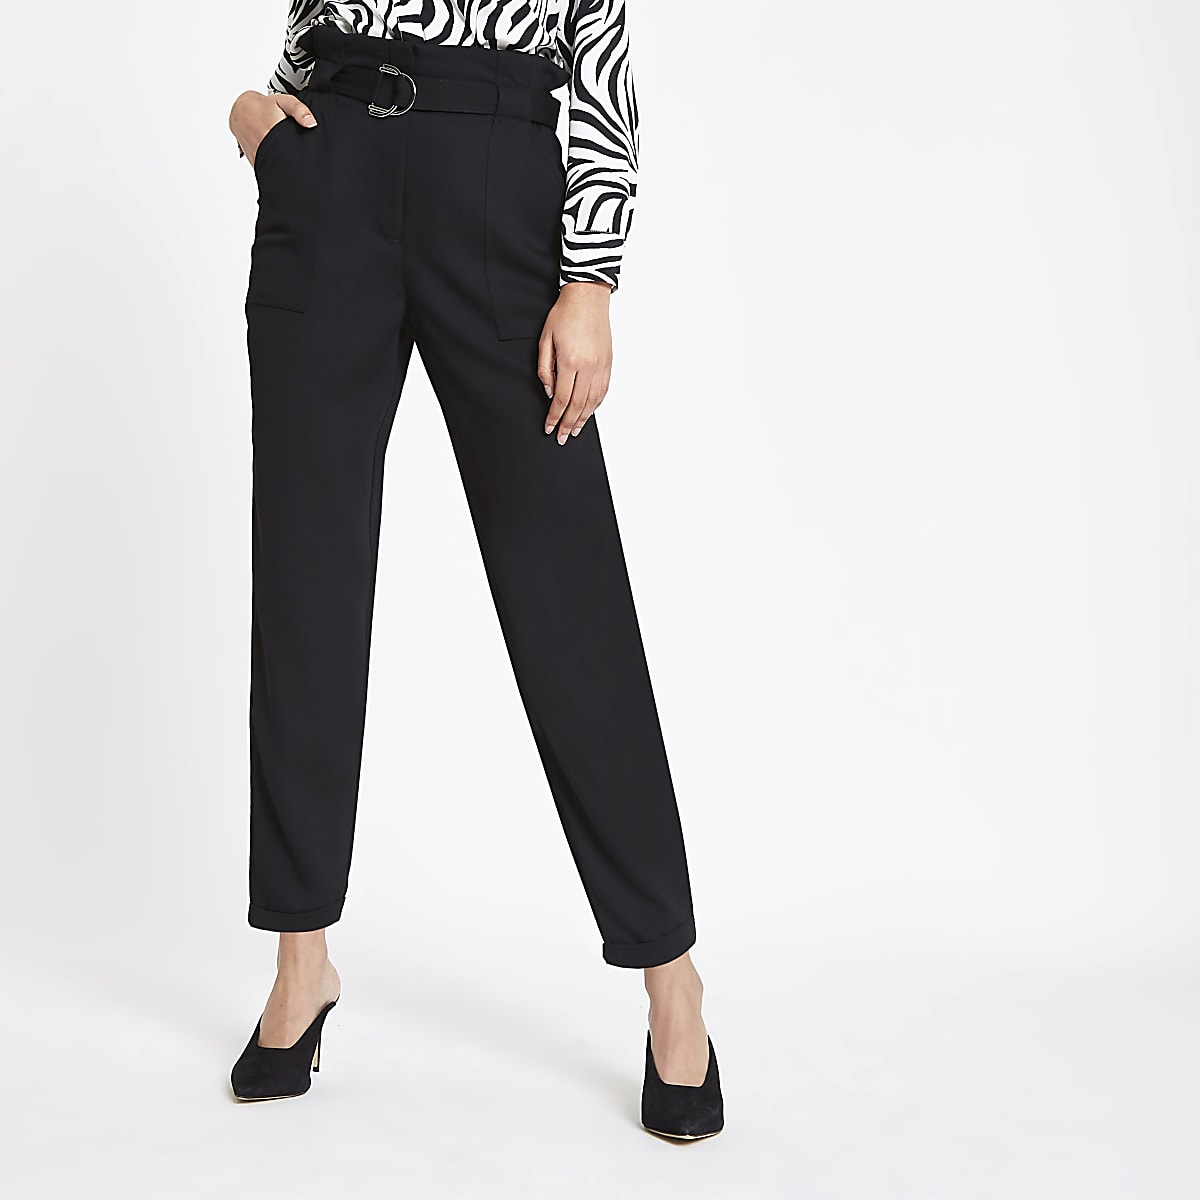 8697fc68343ce Black paperbag tapered trousers - Tapered Trousers - Trousers - women